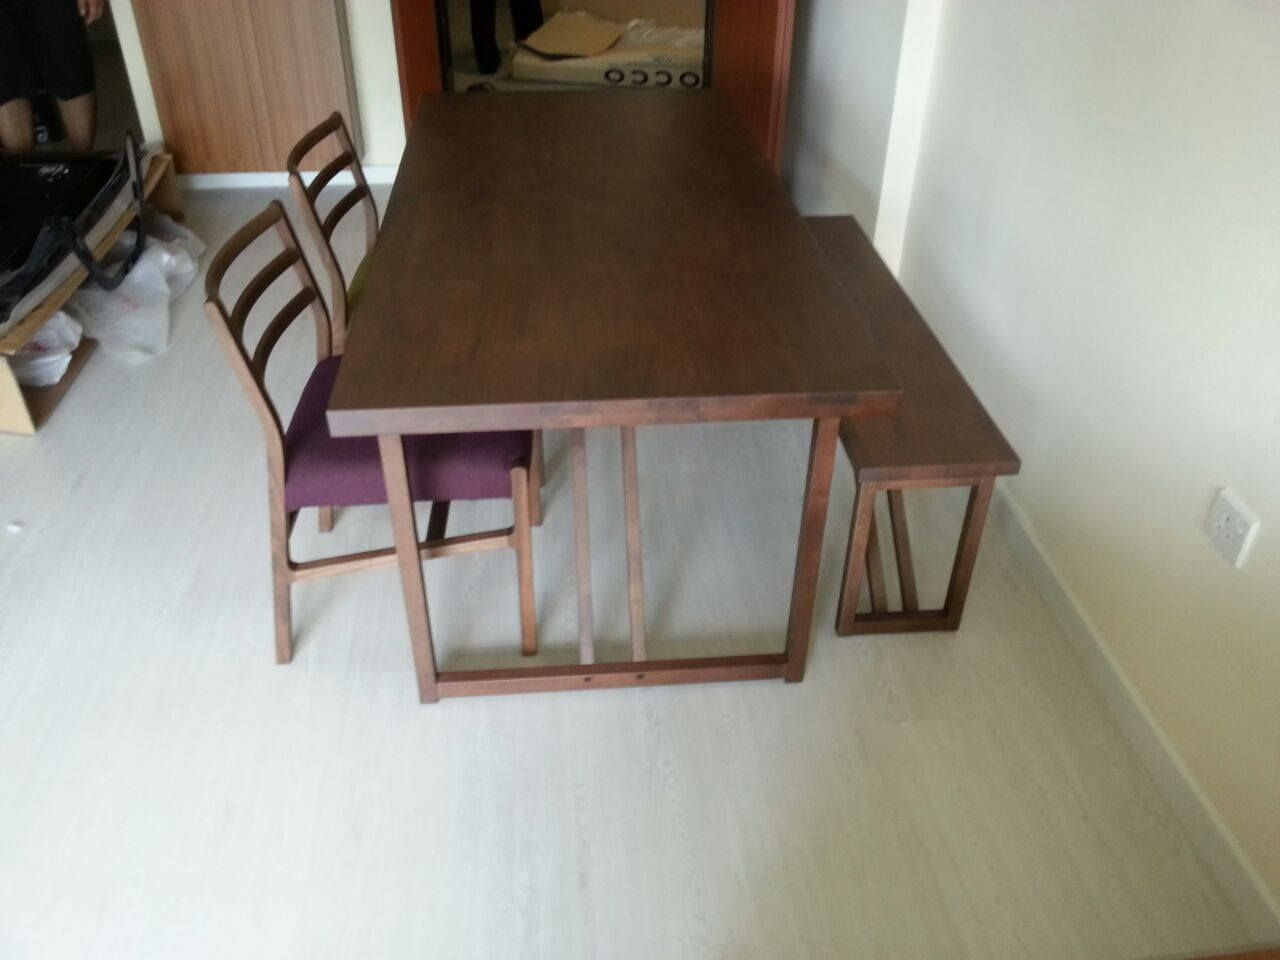 Soild wood dining table with bench and chairs